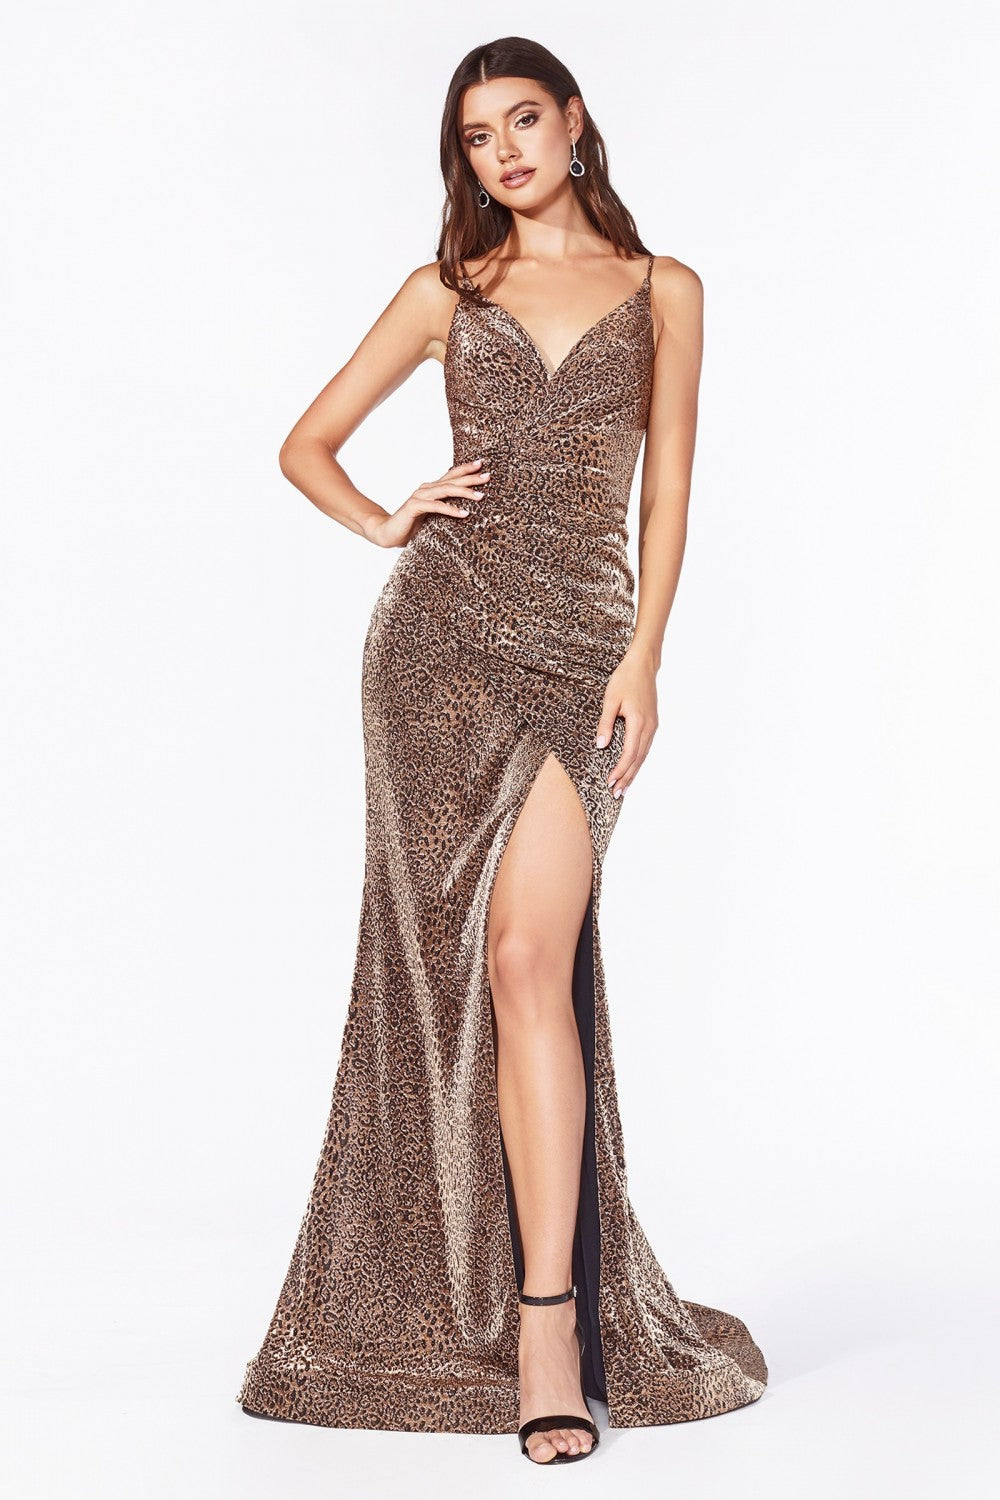 Cinderella Divine Chart I CD CDS347 - Fitted leopard print dress with a gathered waistline and leg slit. - Diggz Prom